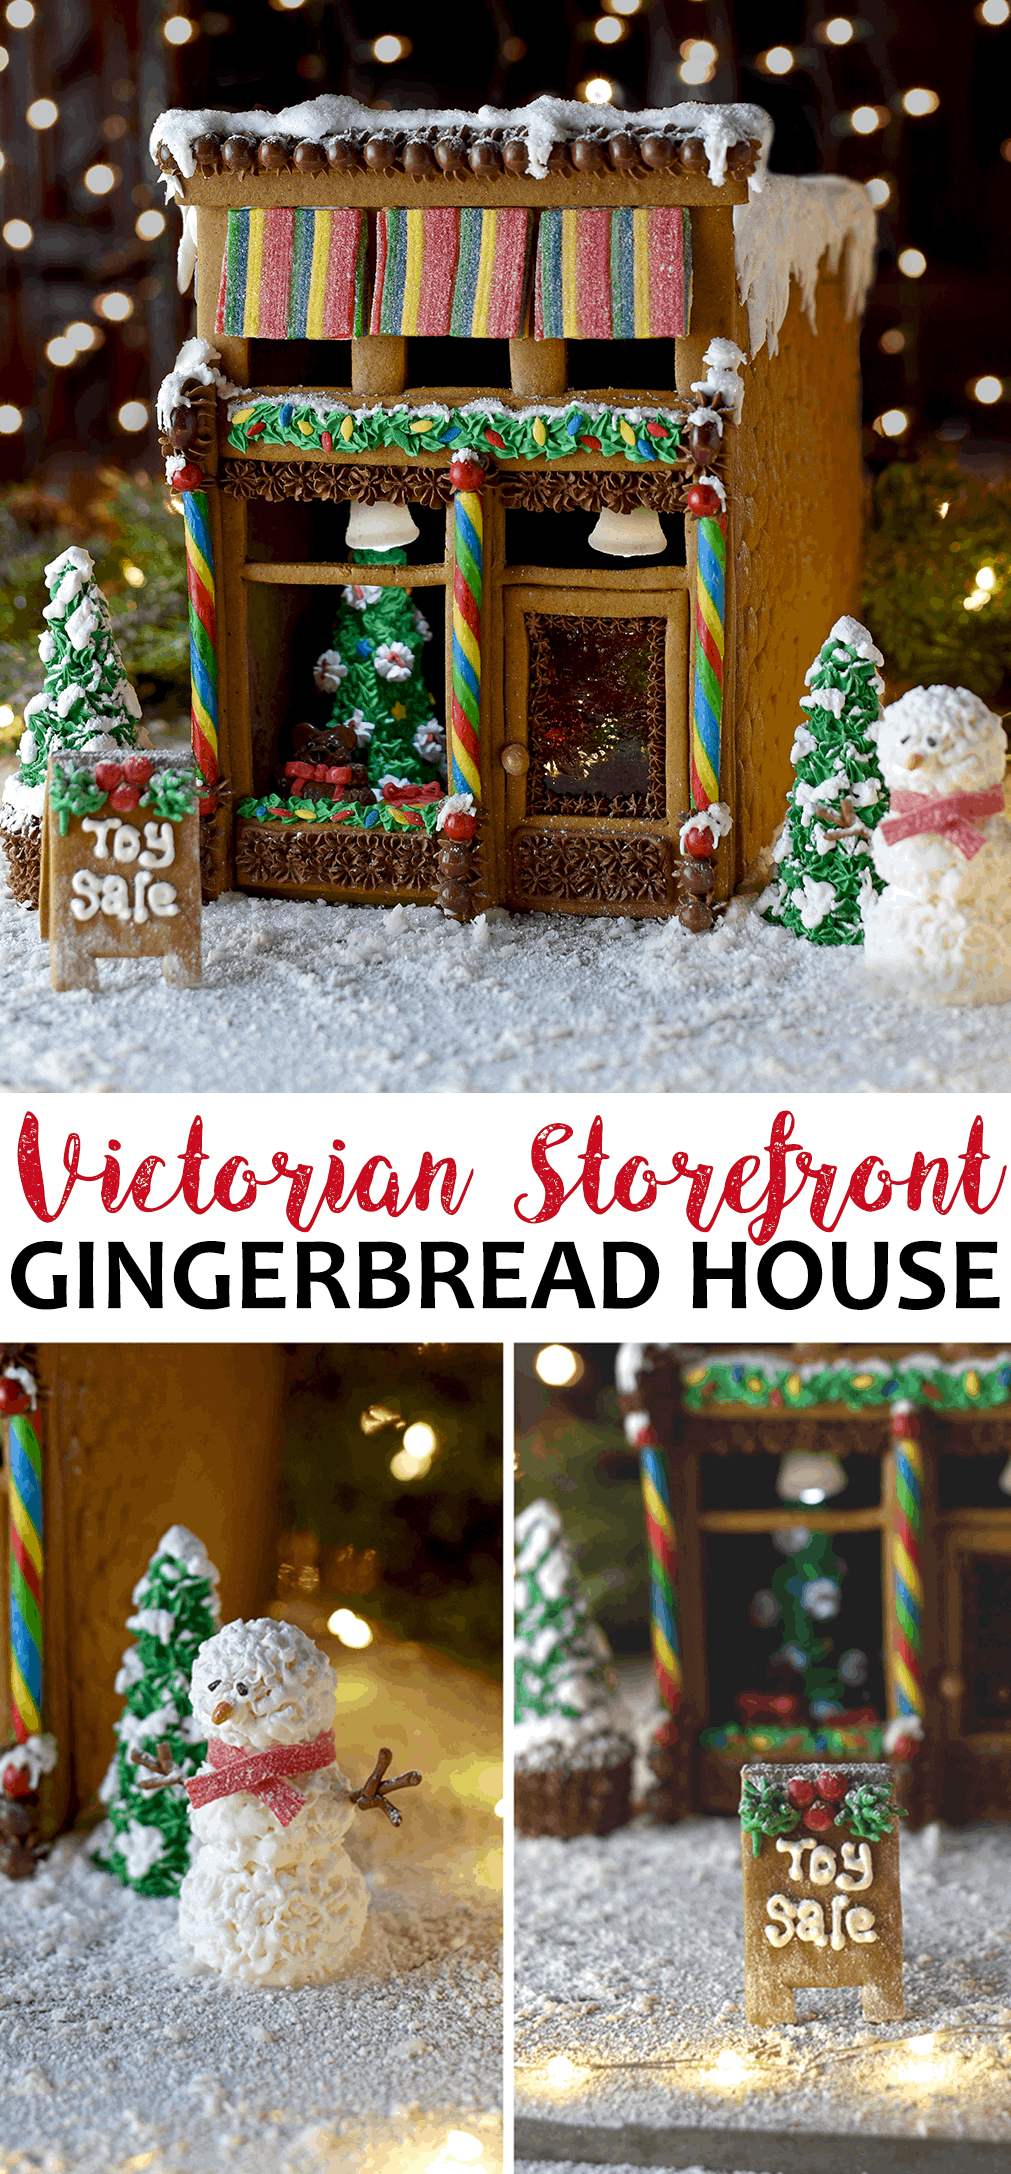 Victorian Storefront Gingerbread House Pin - Victorian Storefront Gingerbread House Template